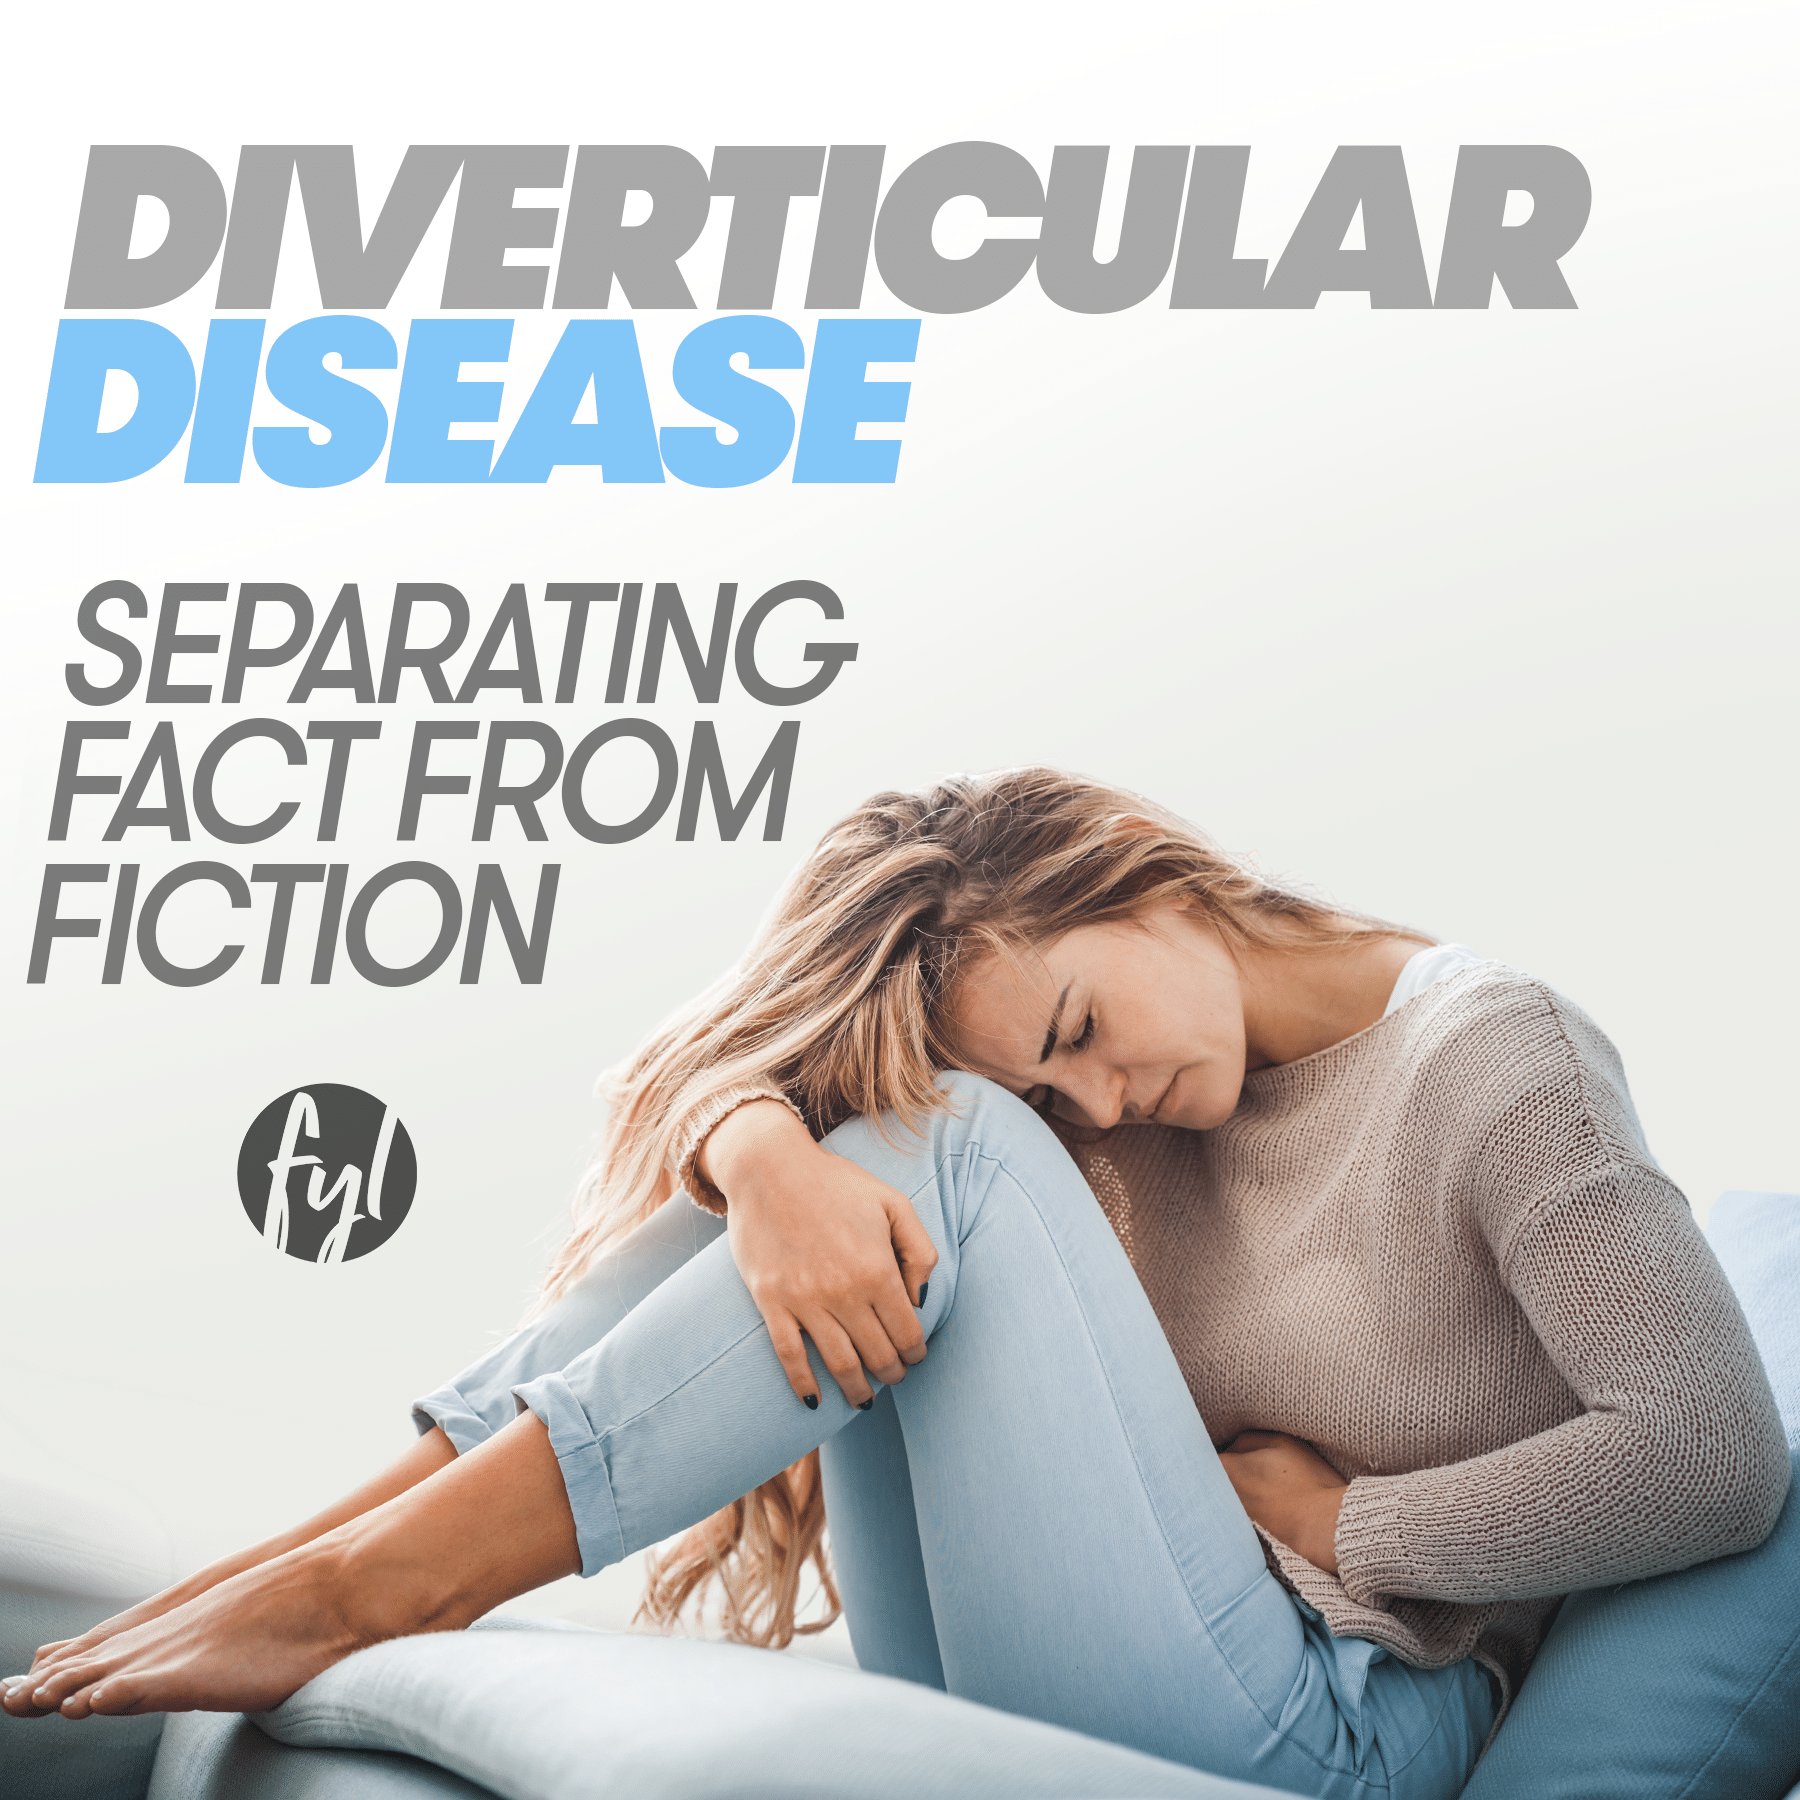 Diverticular Disease: Separating Fact From Fiction